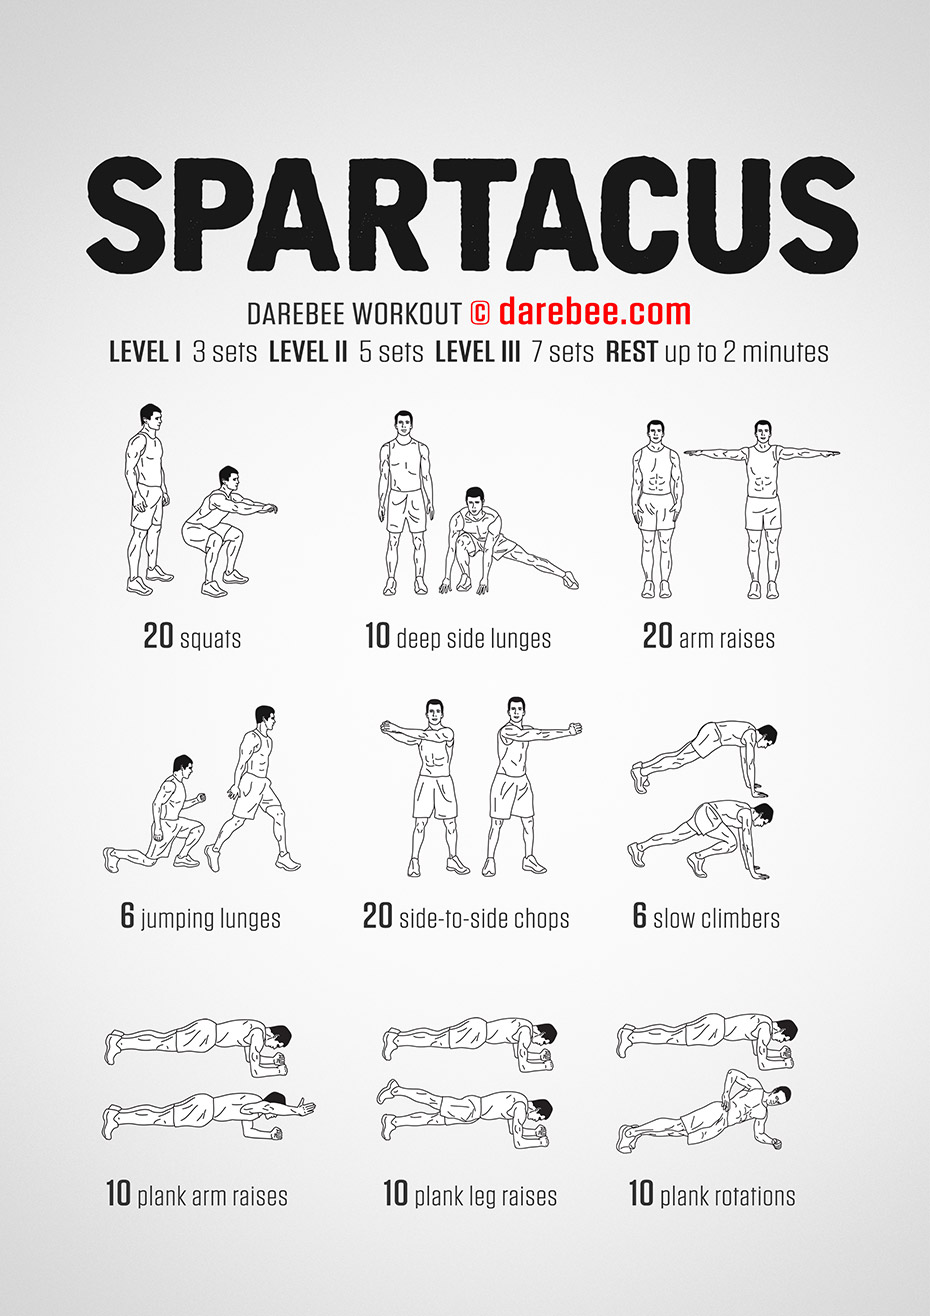 photo about Spartacus Workout Printable named Spartacus Exercise routine